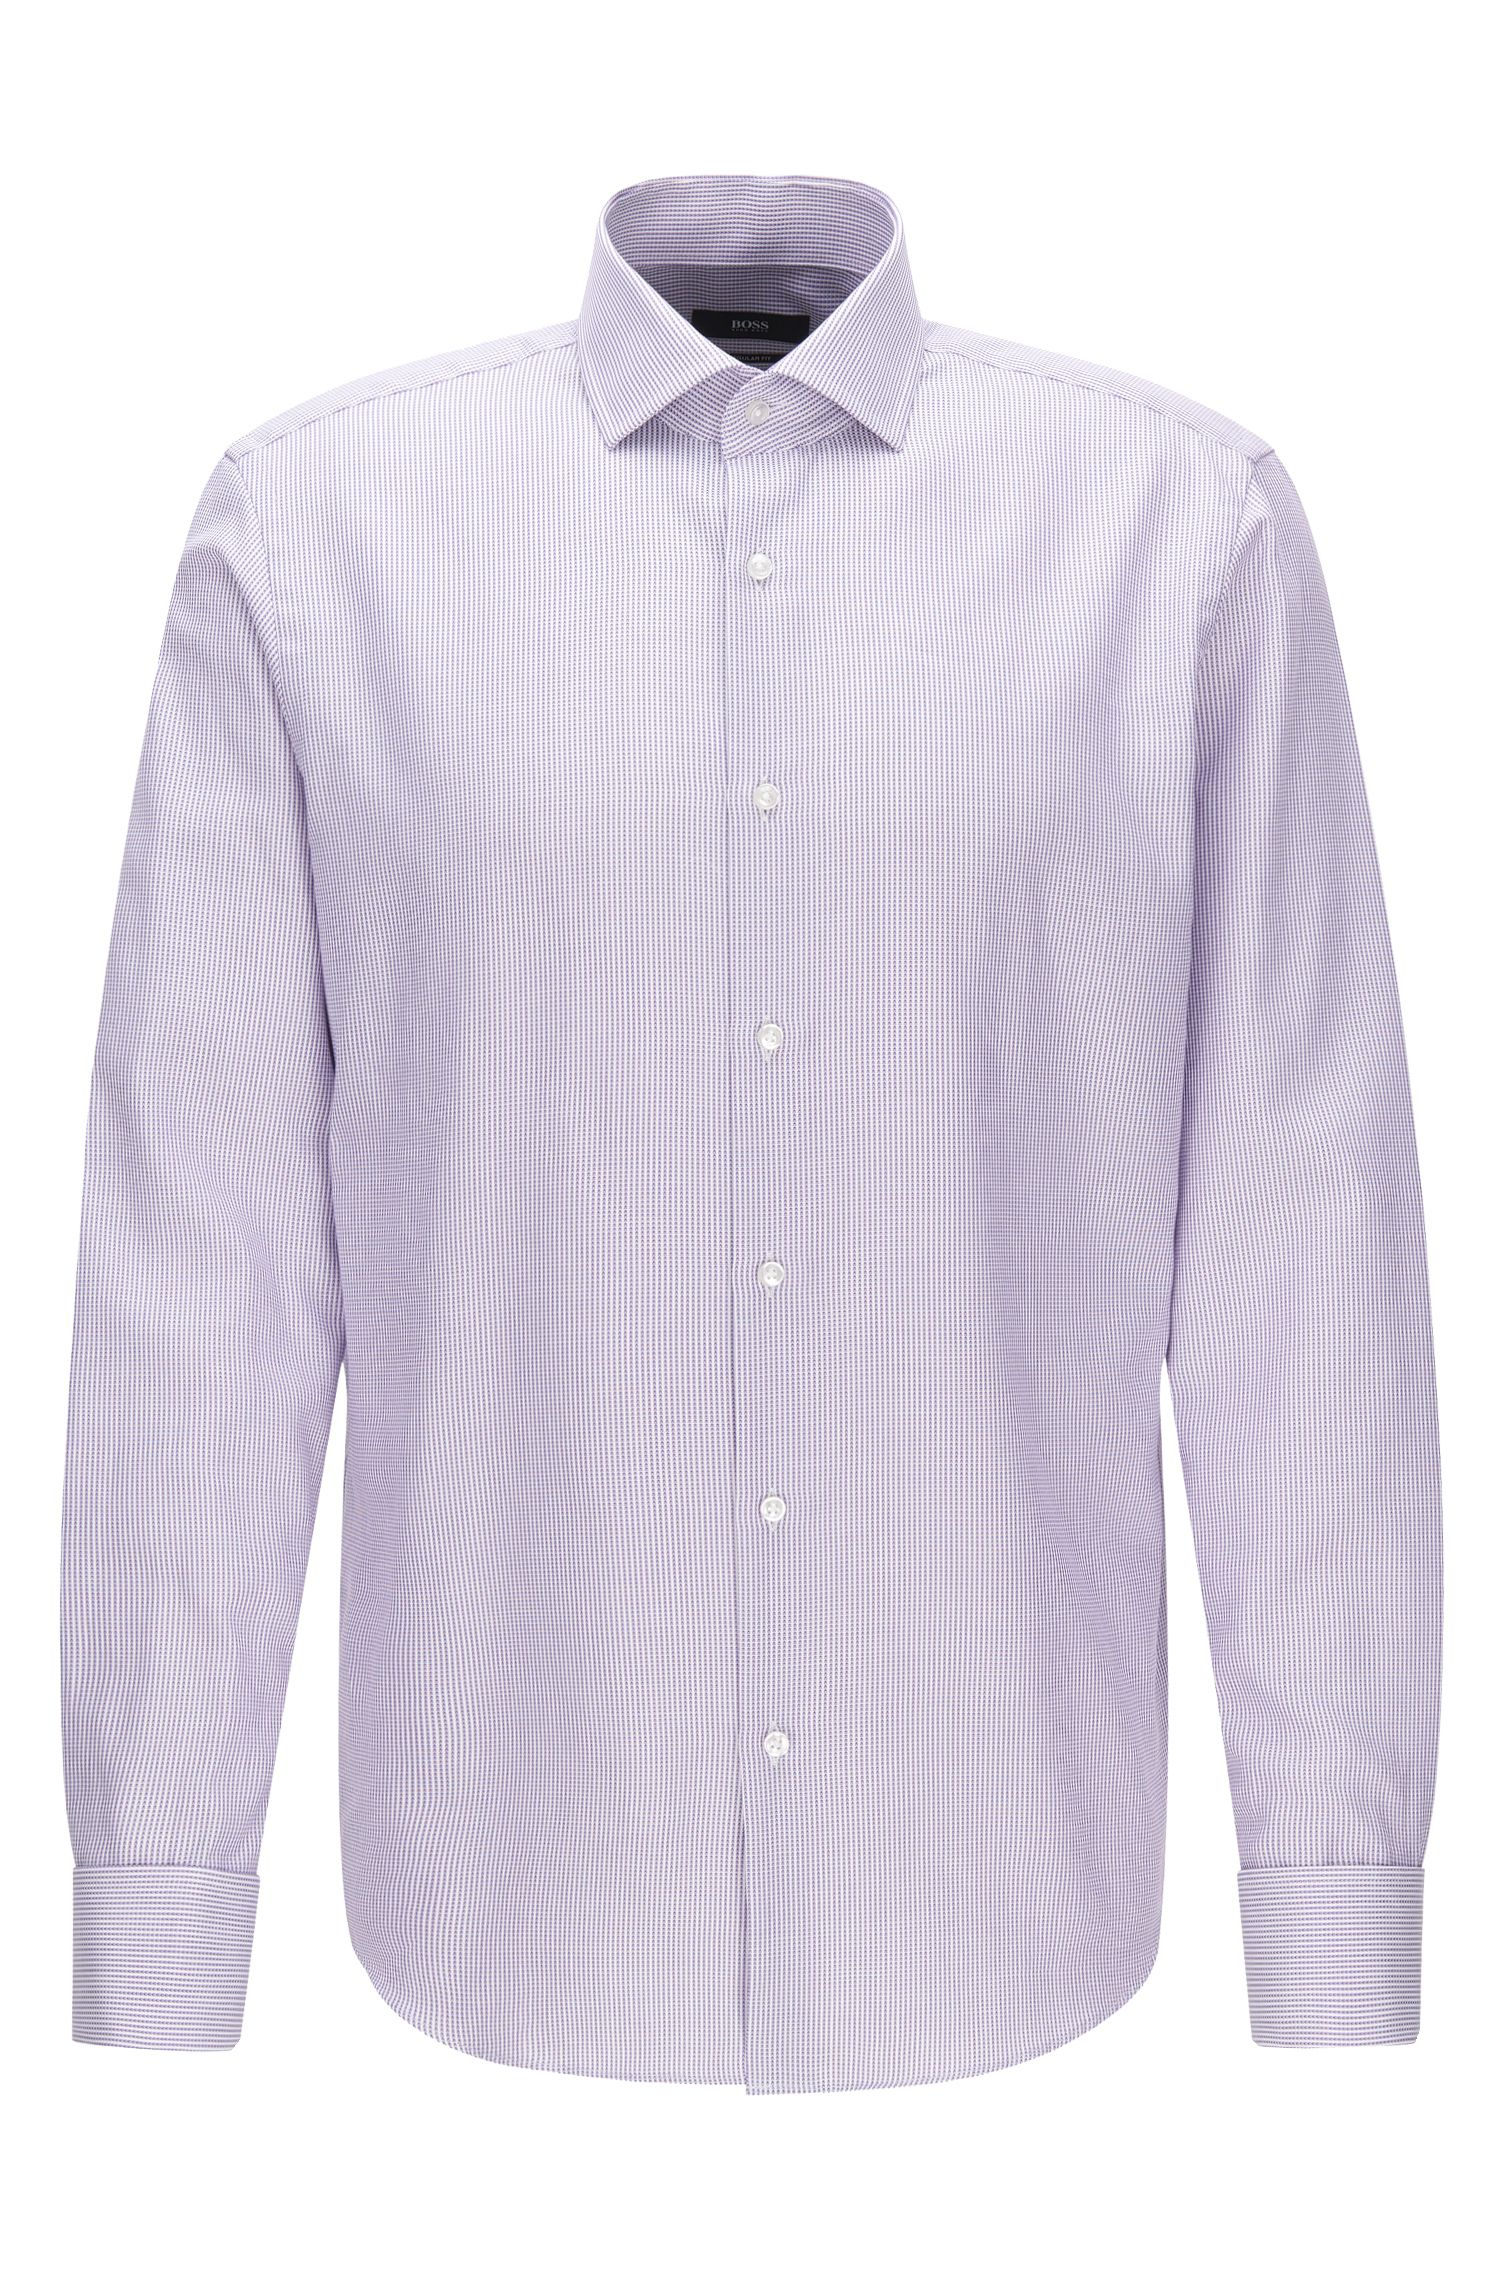 Dobby Cotton Dress Shirt, Regular Fit | Gardner